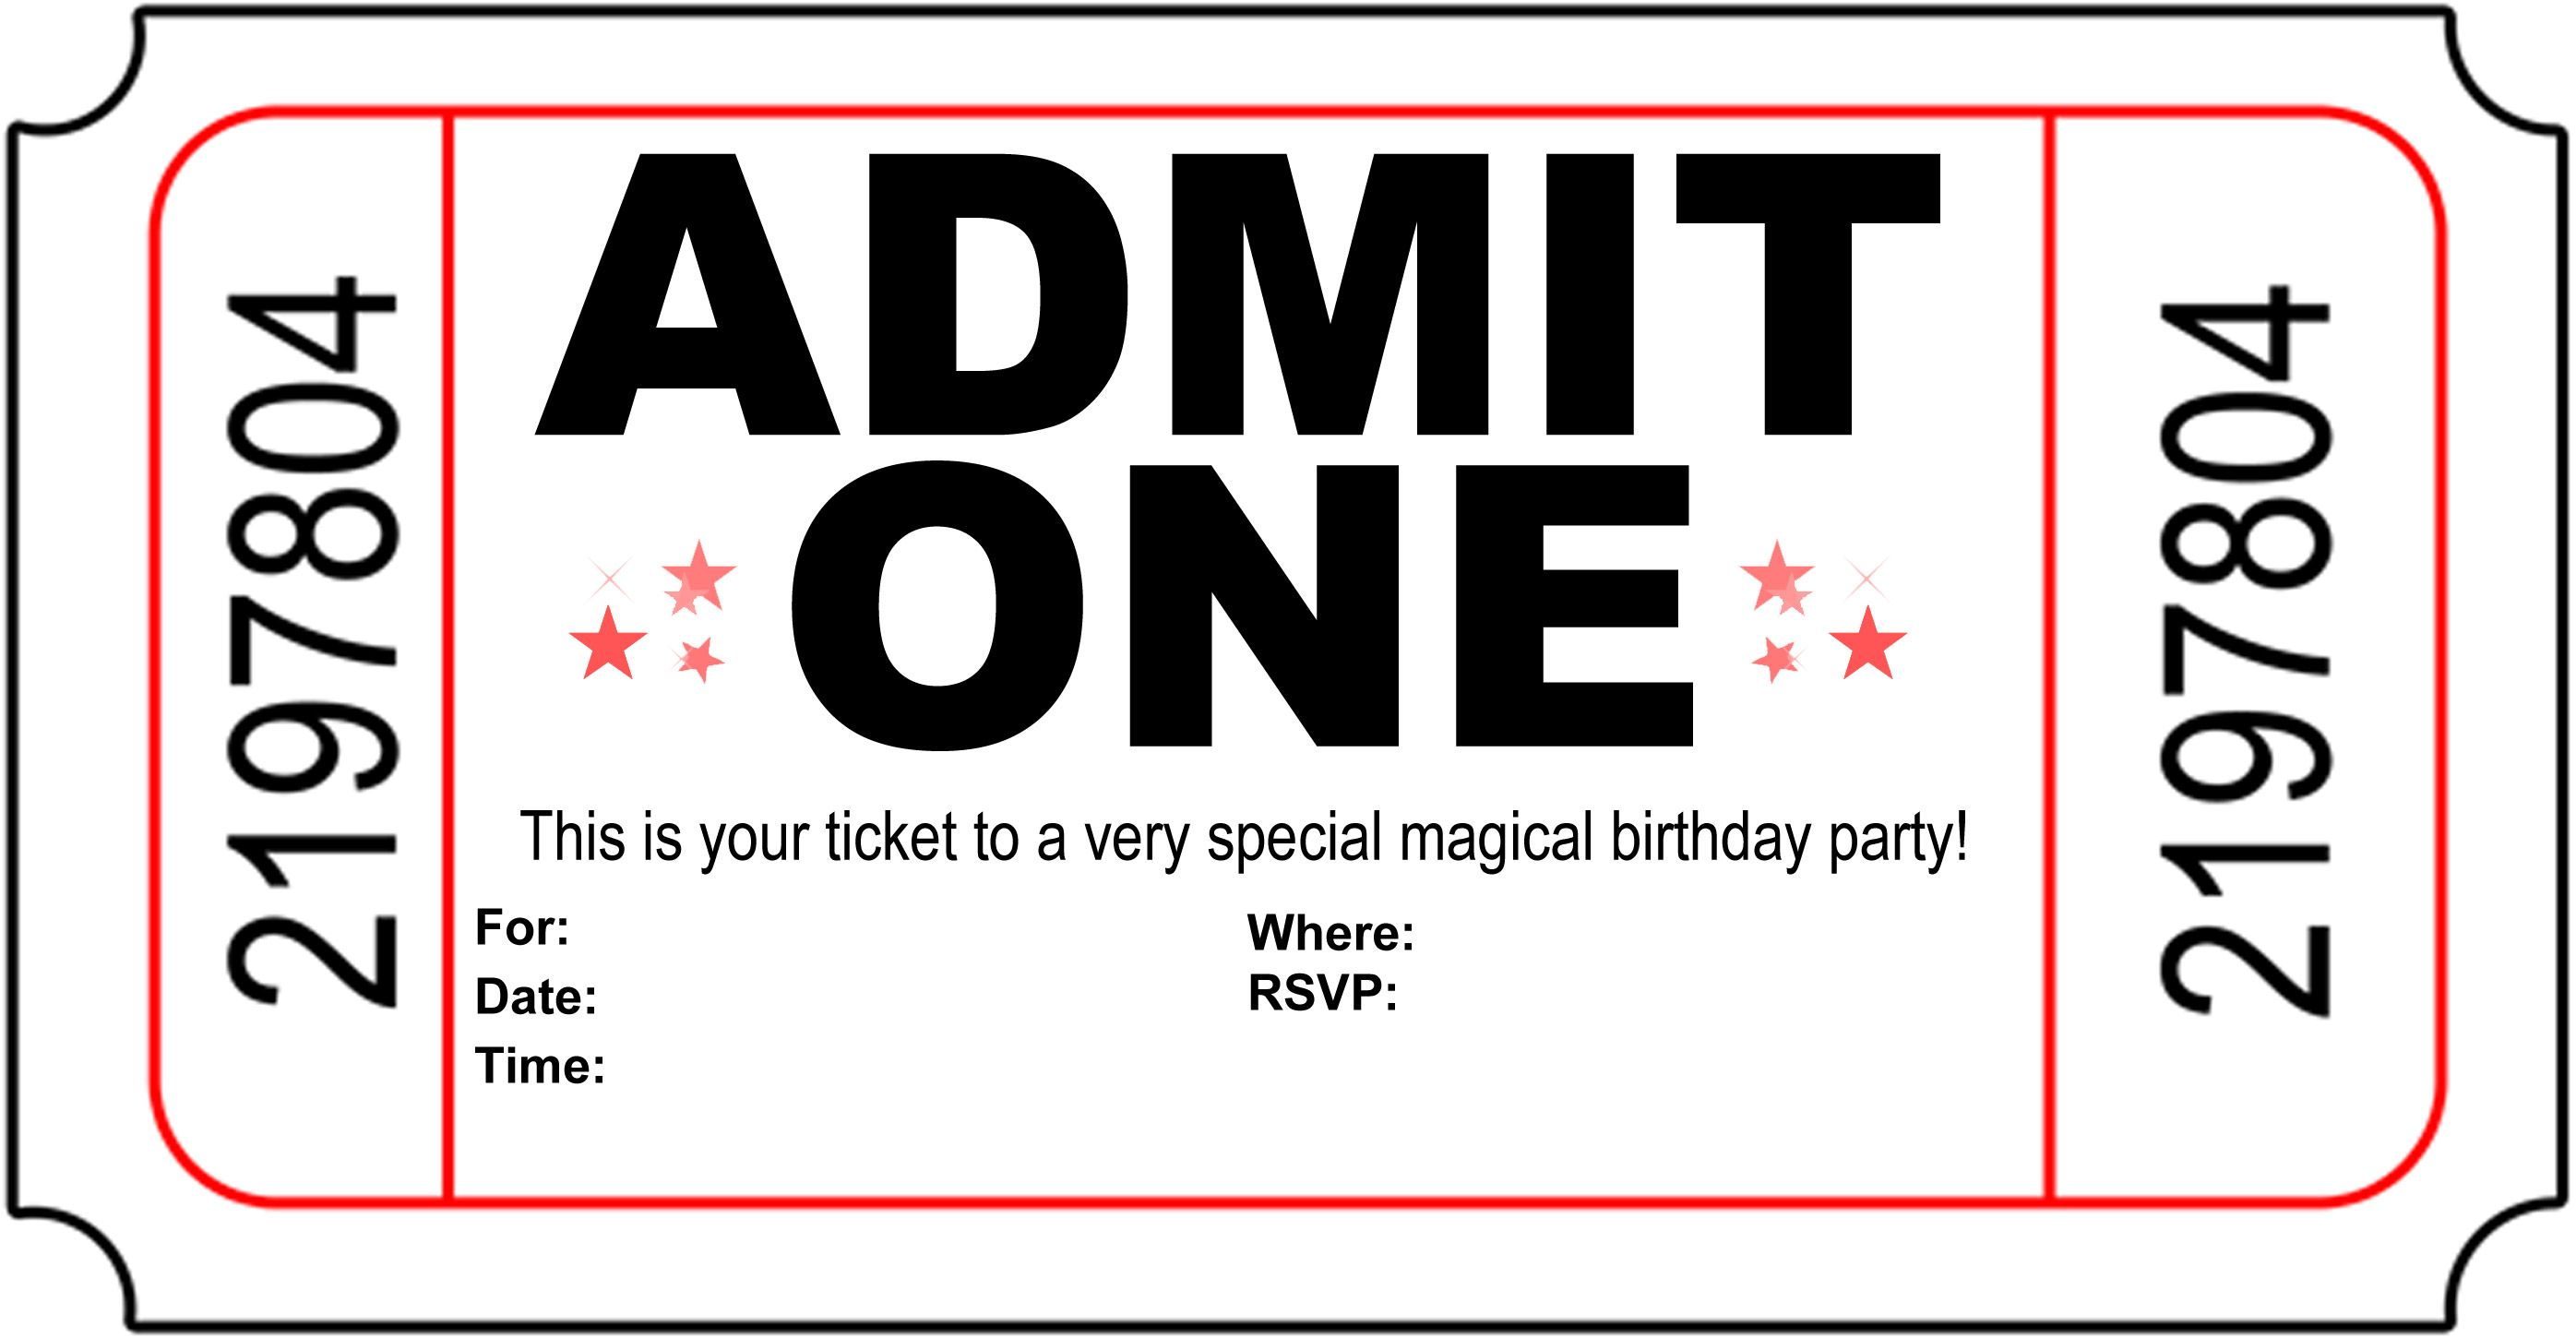 Create Printable Birthday Party Invitations Designs With Astounding Appearance